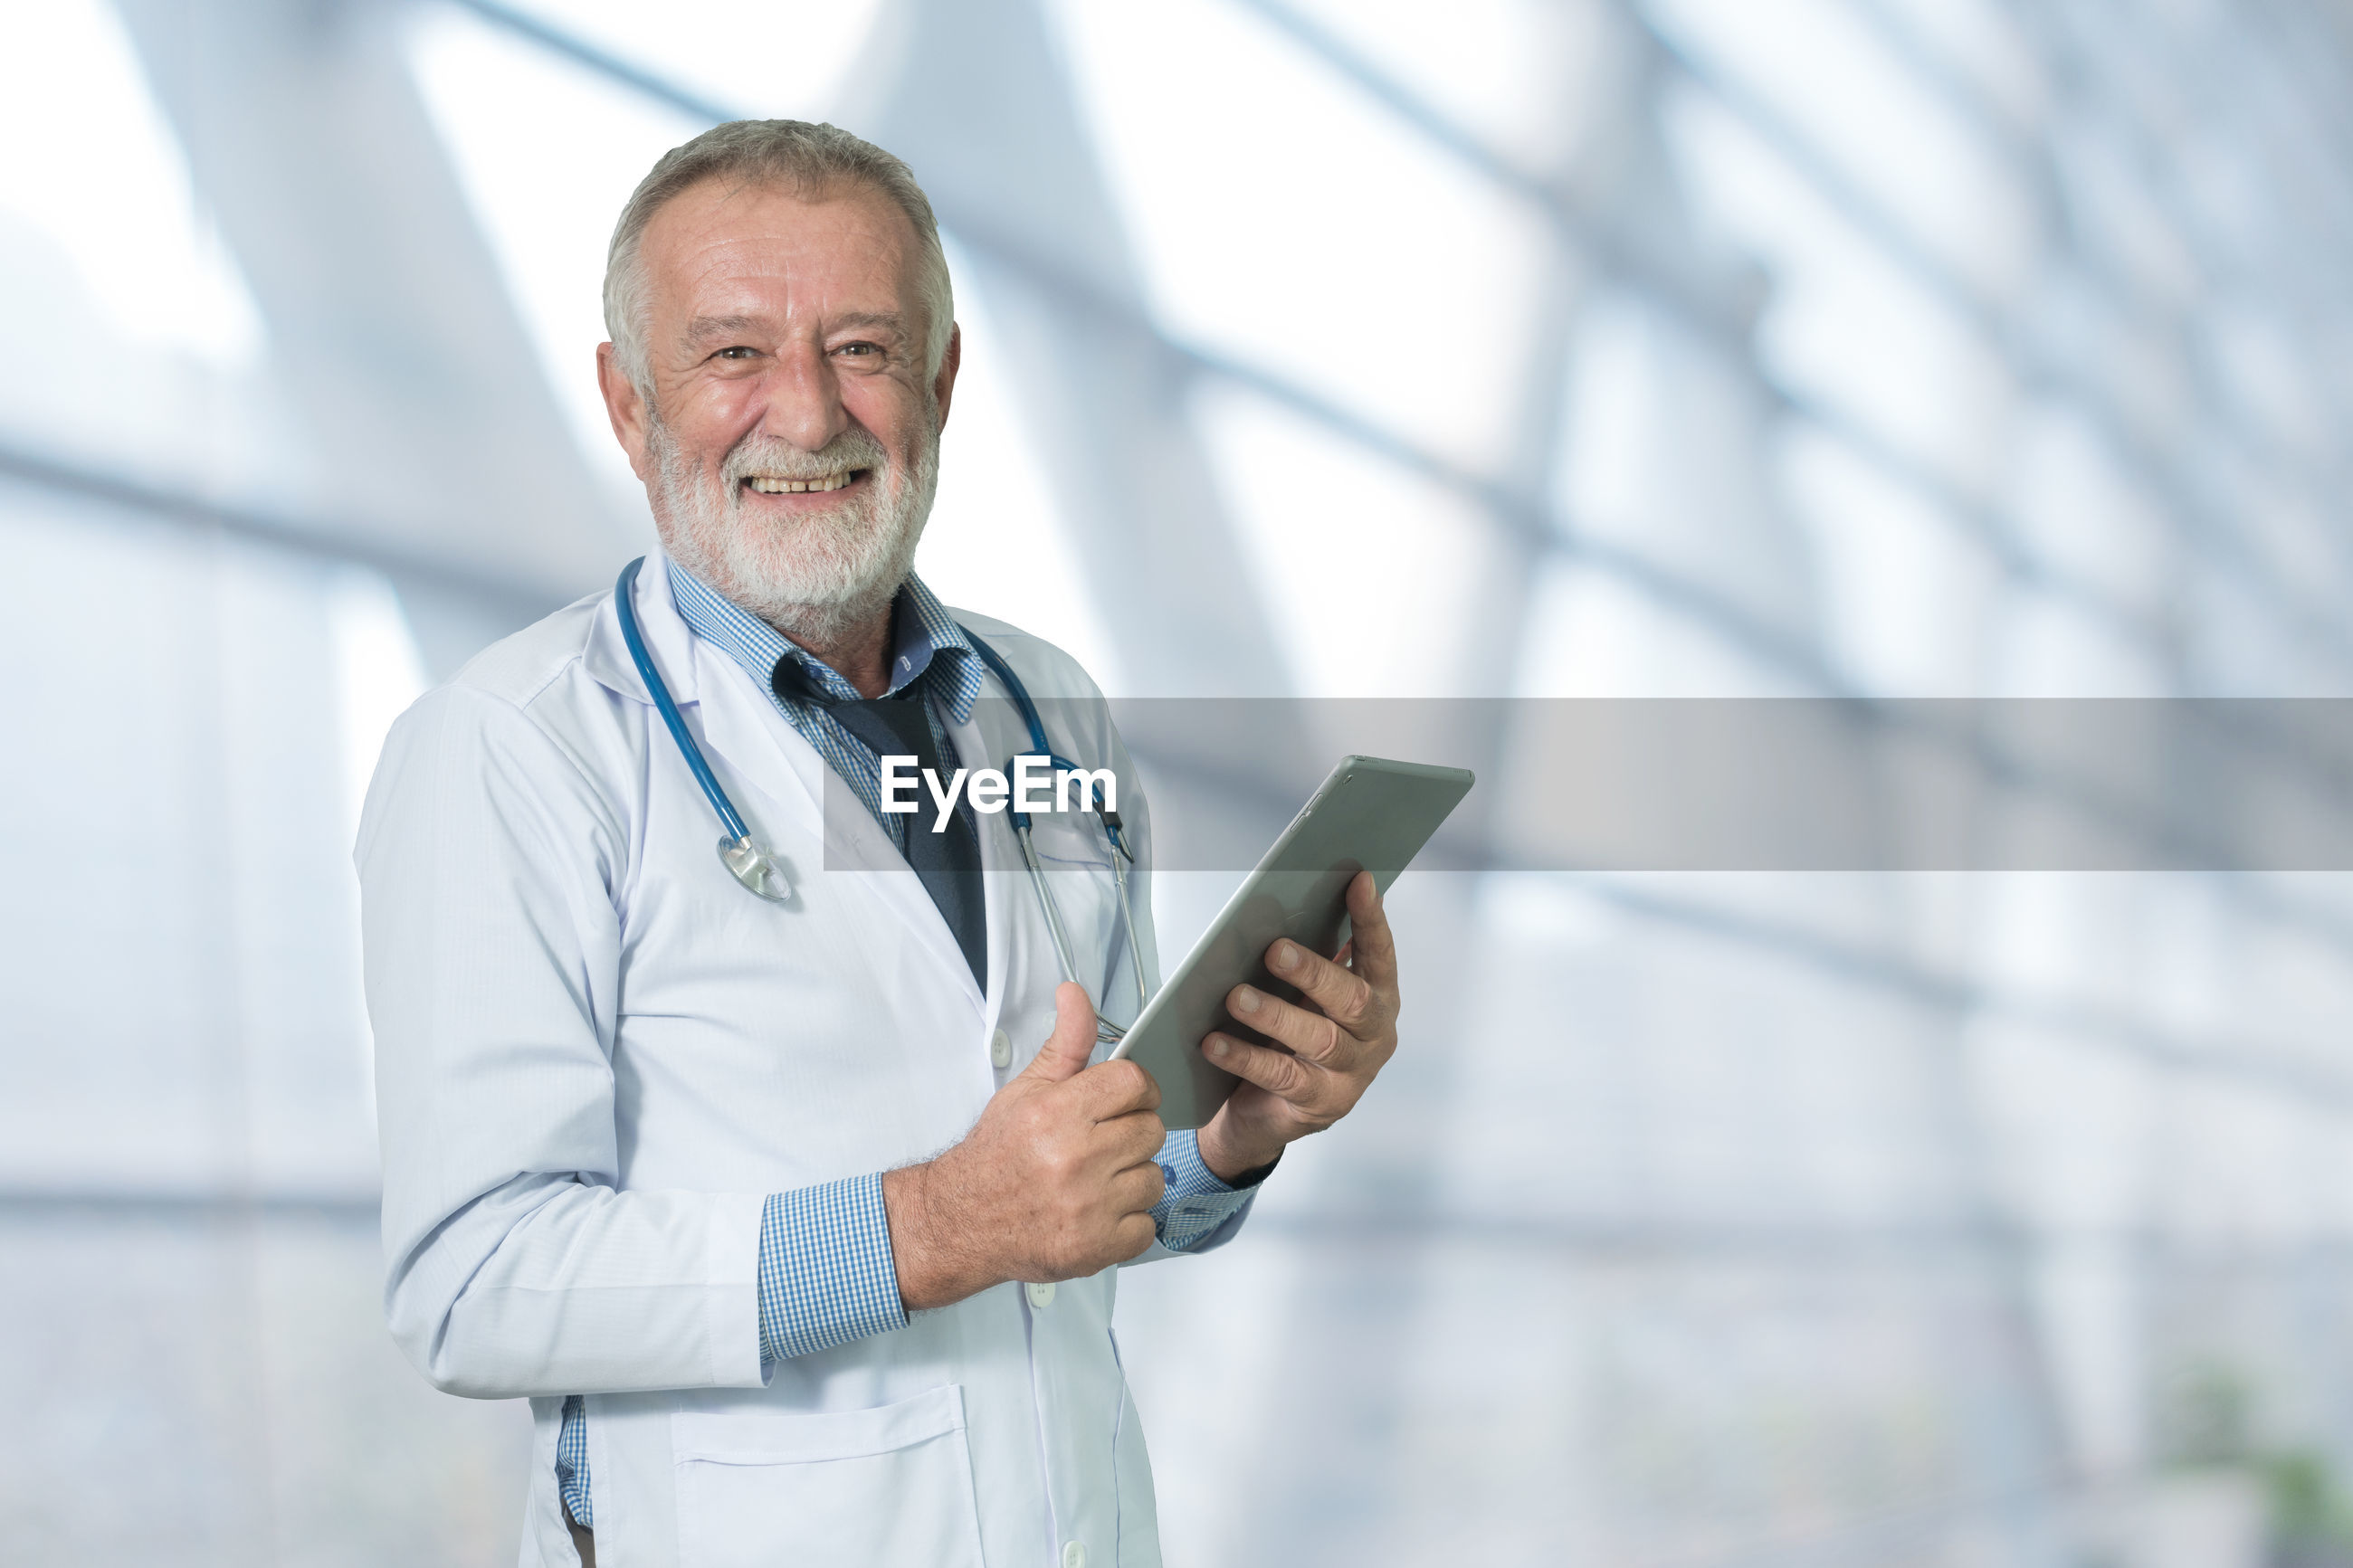 Portrait of smiling senior doctor gesturing thumbs up while holding digital tablet in hospital